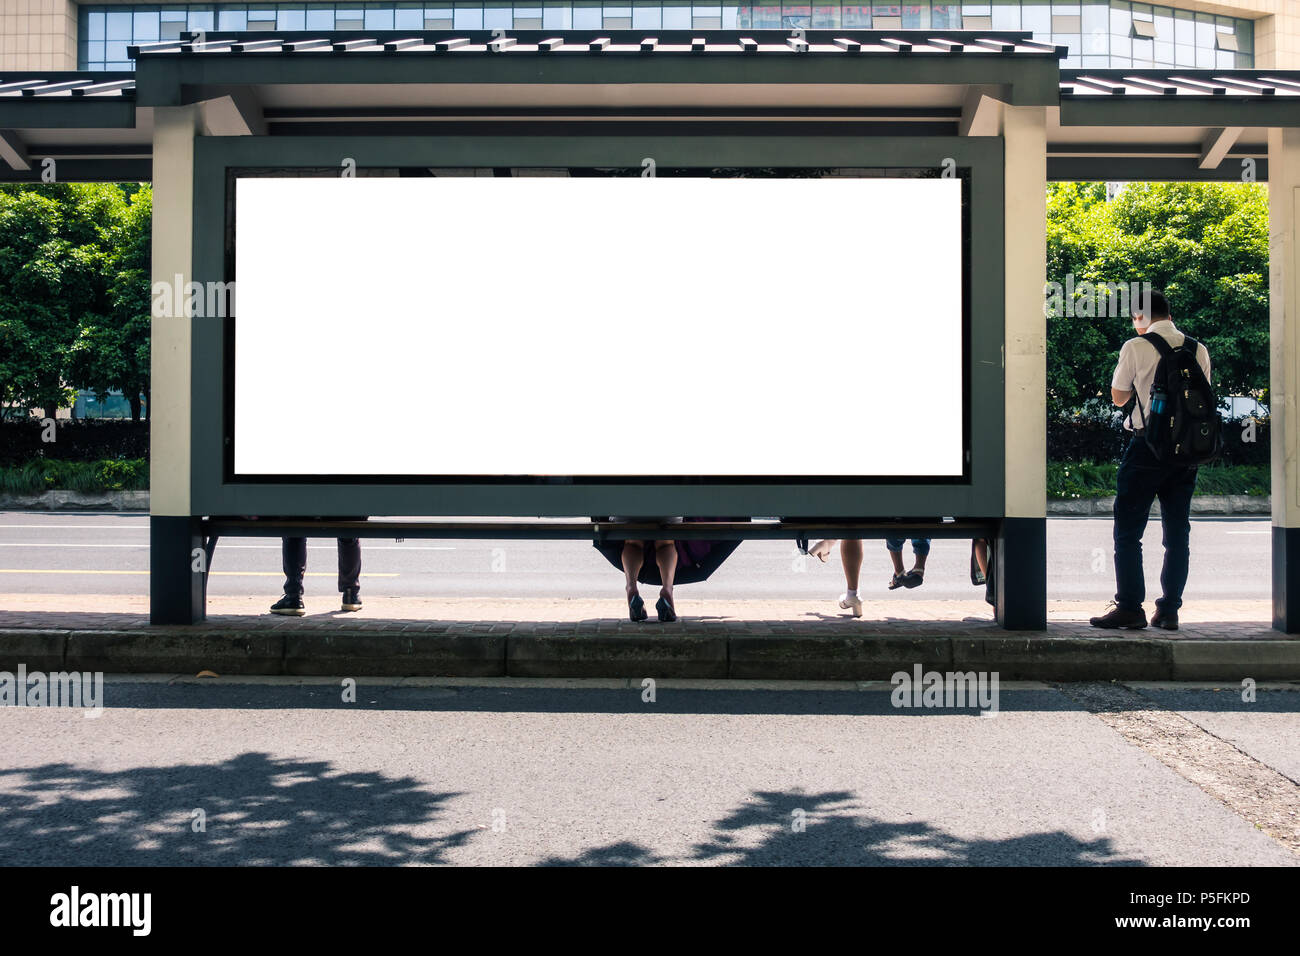 Bus Stop Advertisement Mockup Urban City Environment in China - Stock Image